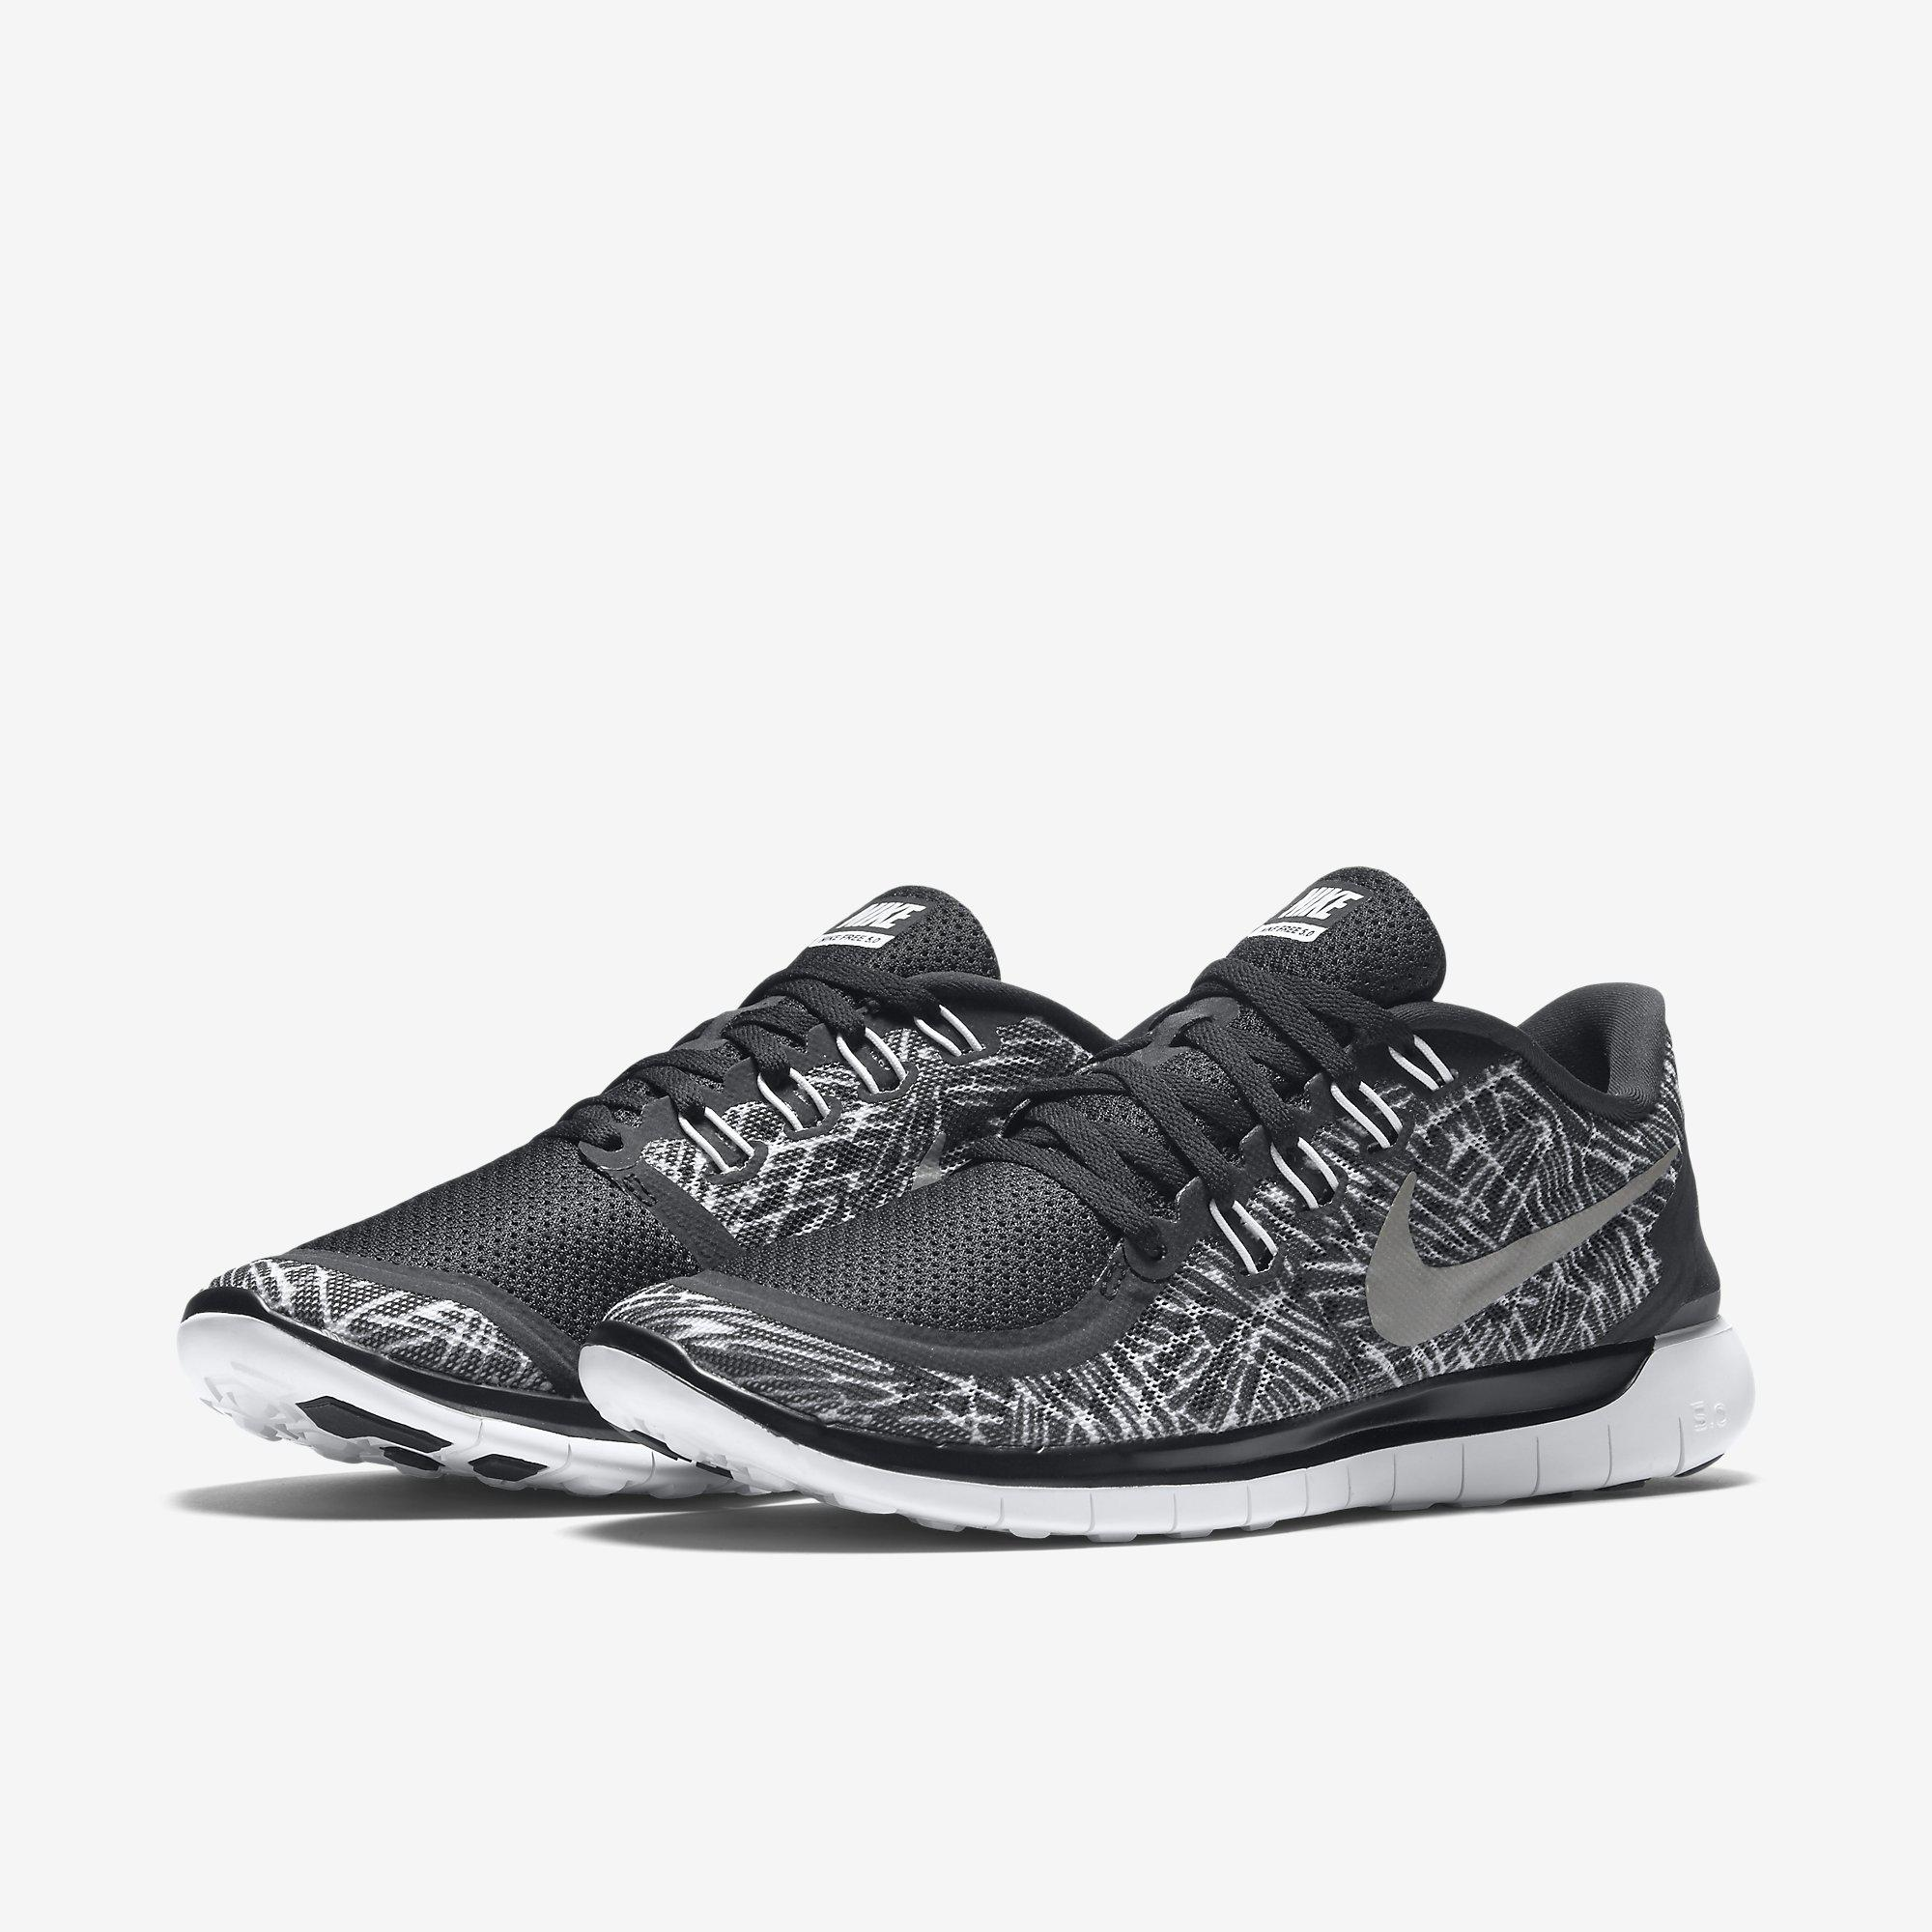 d05494556143 Nike Womens Free 5.0 Print Running Shoes - Black White - Tennisnuts.com